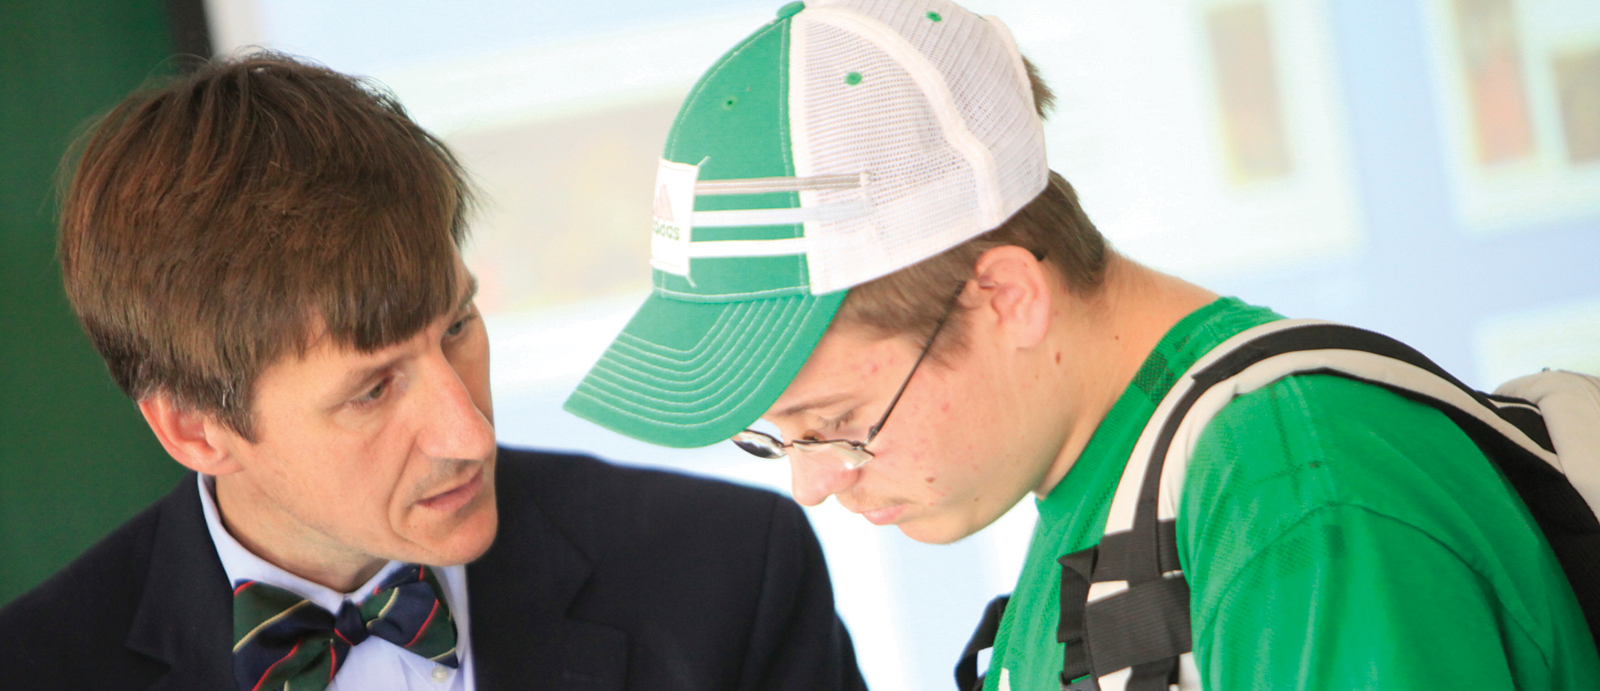 Professor Christopher Carlsmith talking to a student